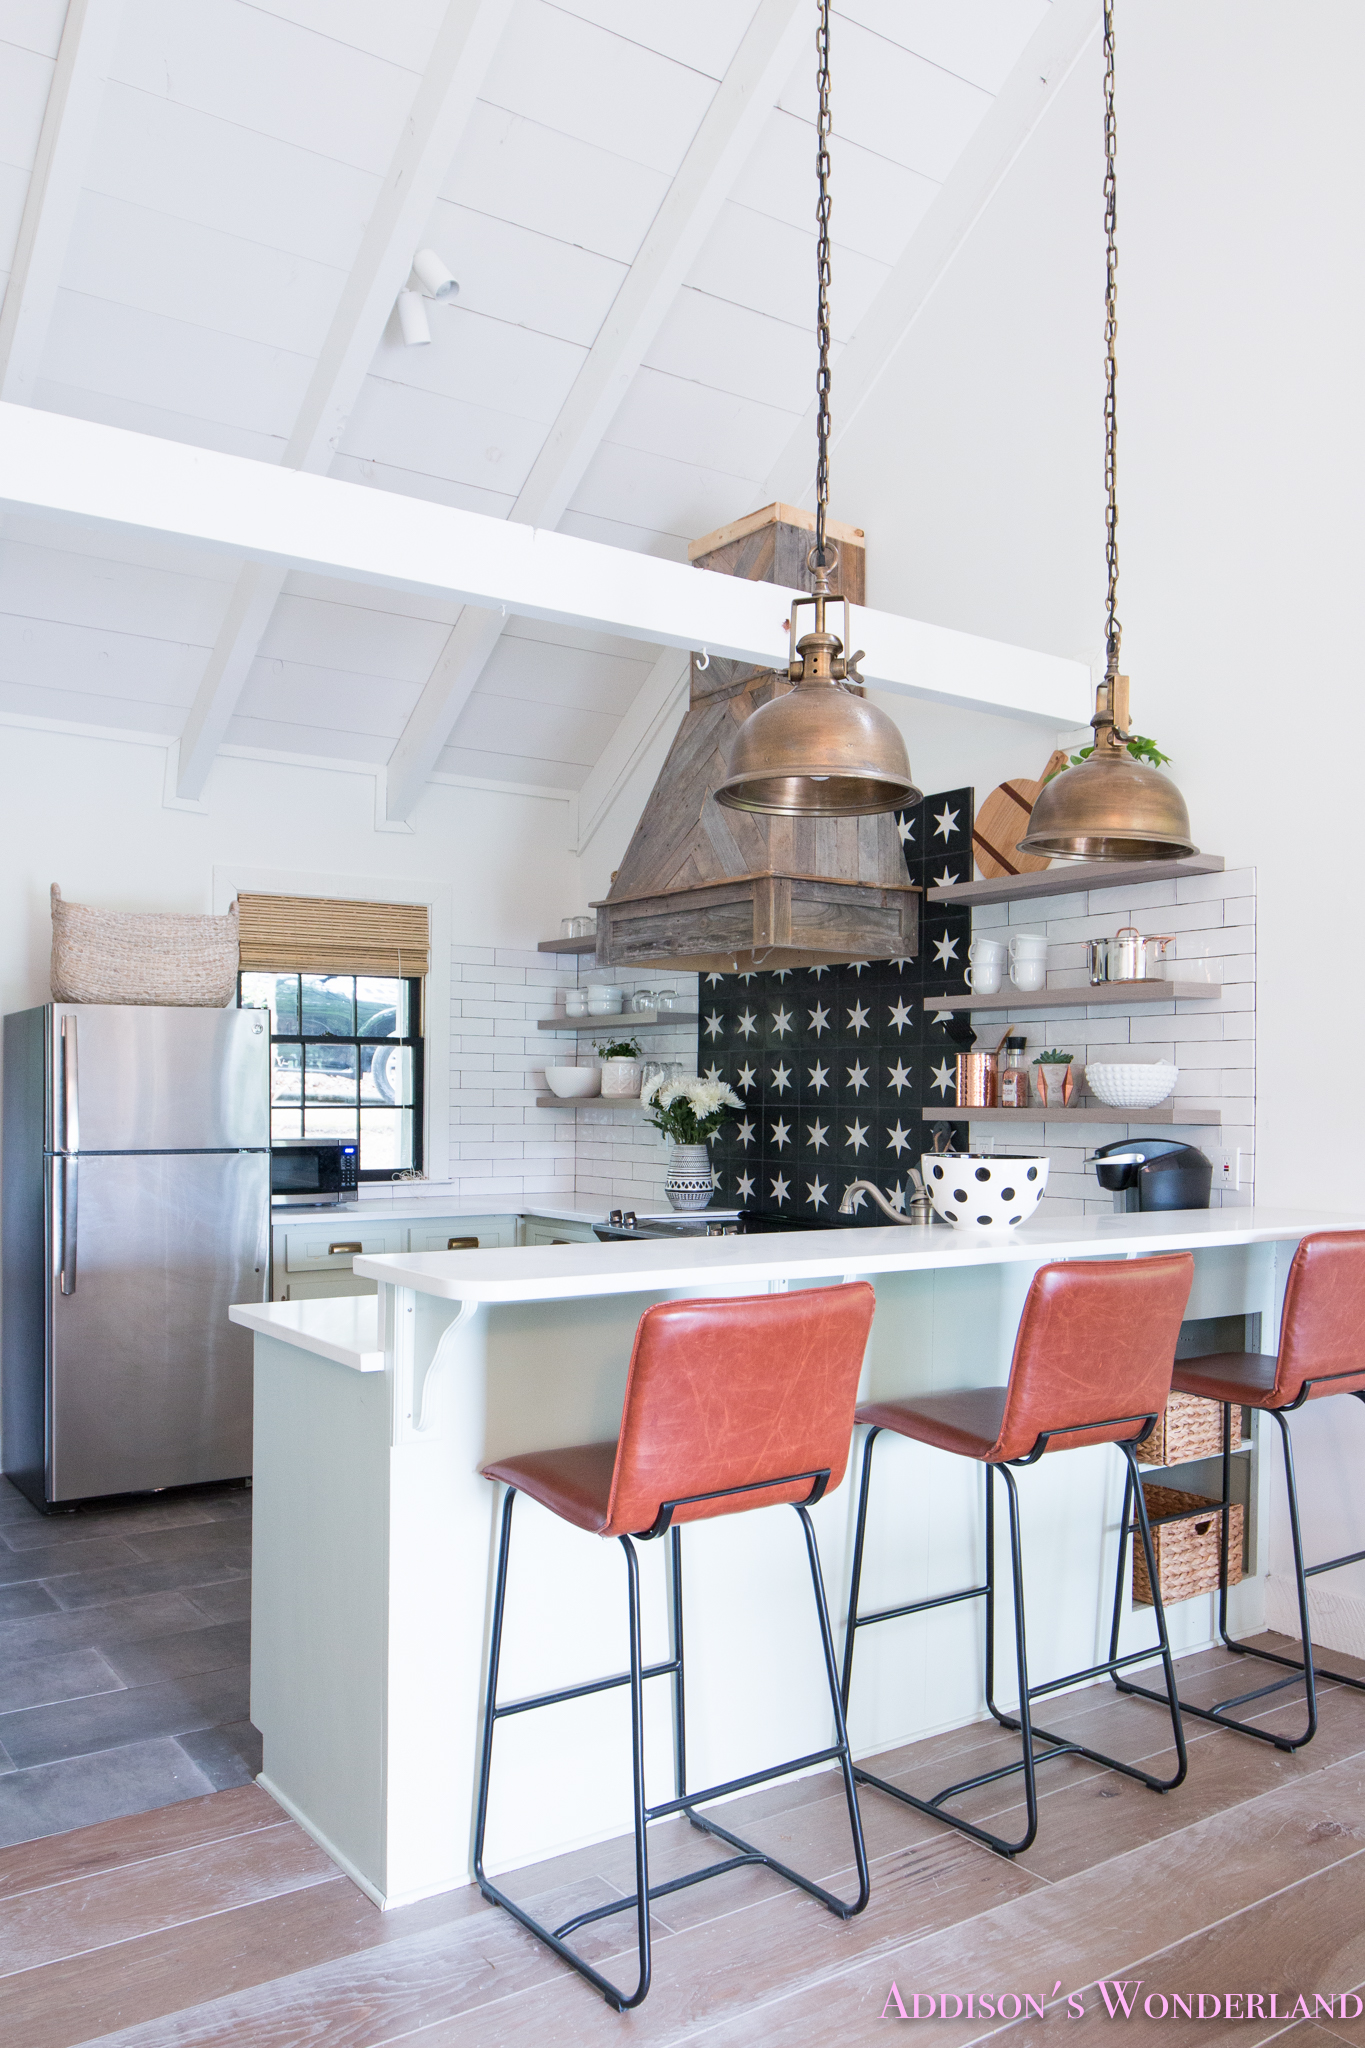 Modern Aw Burch Kitchens Collection - Kitchen Cabinets   Ideas ...